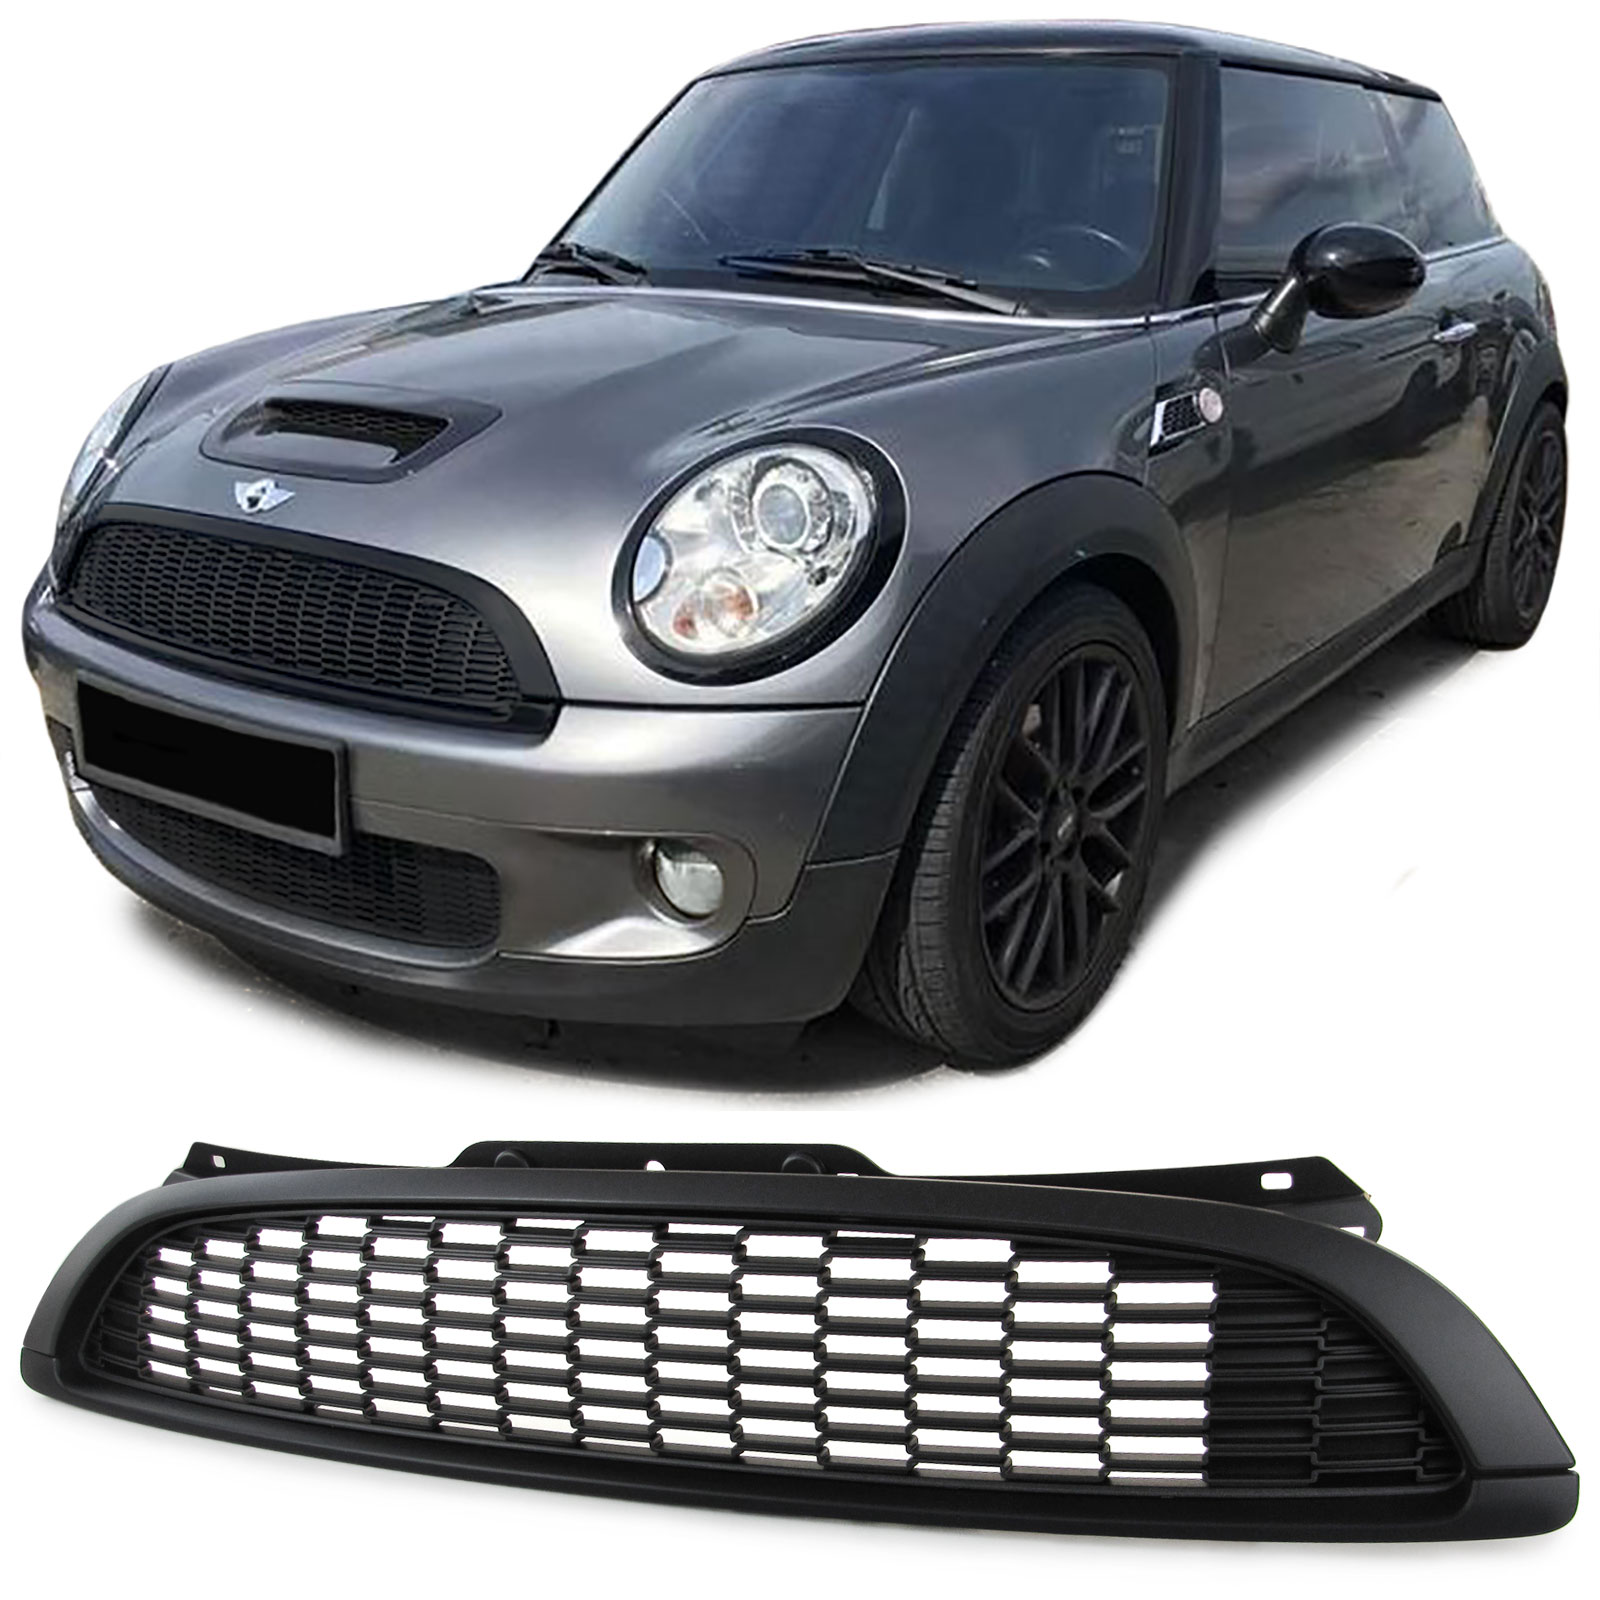 sport k hlergrill s optik schwarz matt f r mini cooper r55 r56 r57 r58 06 13 ebay. Black Bedroom Furniture Sets. Home Design Ideas